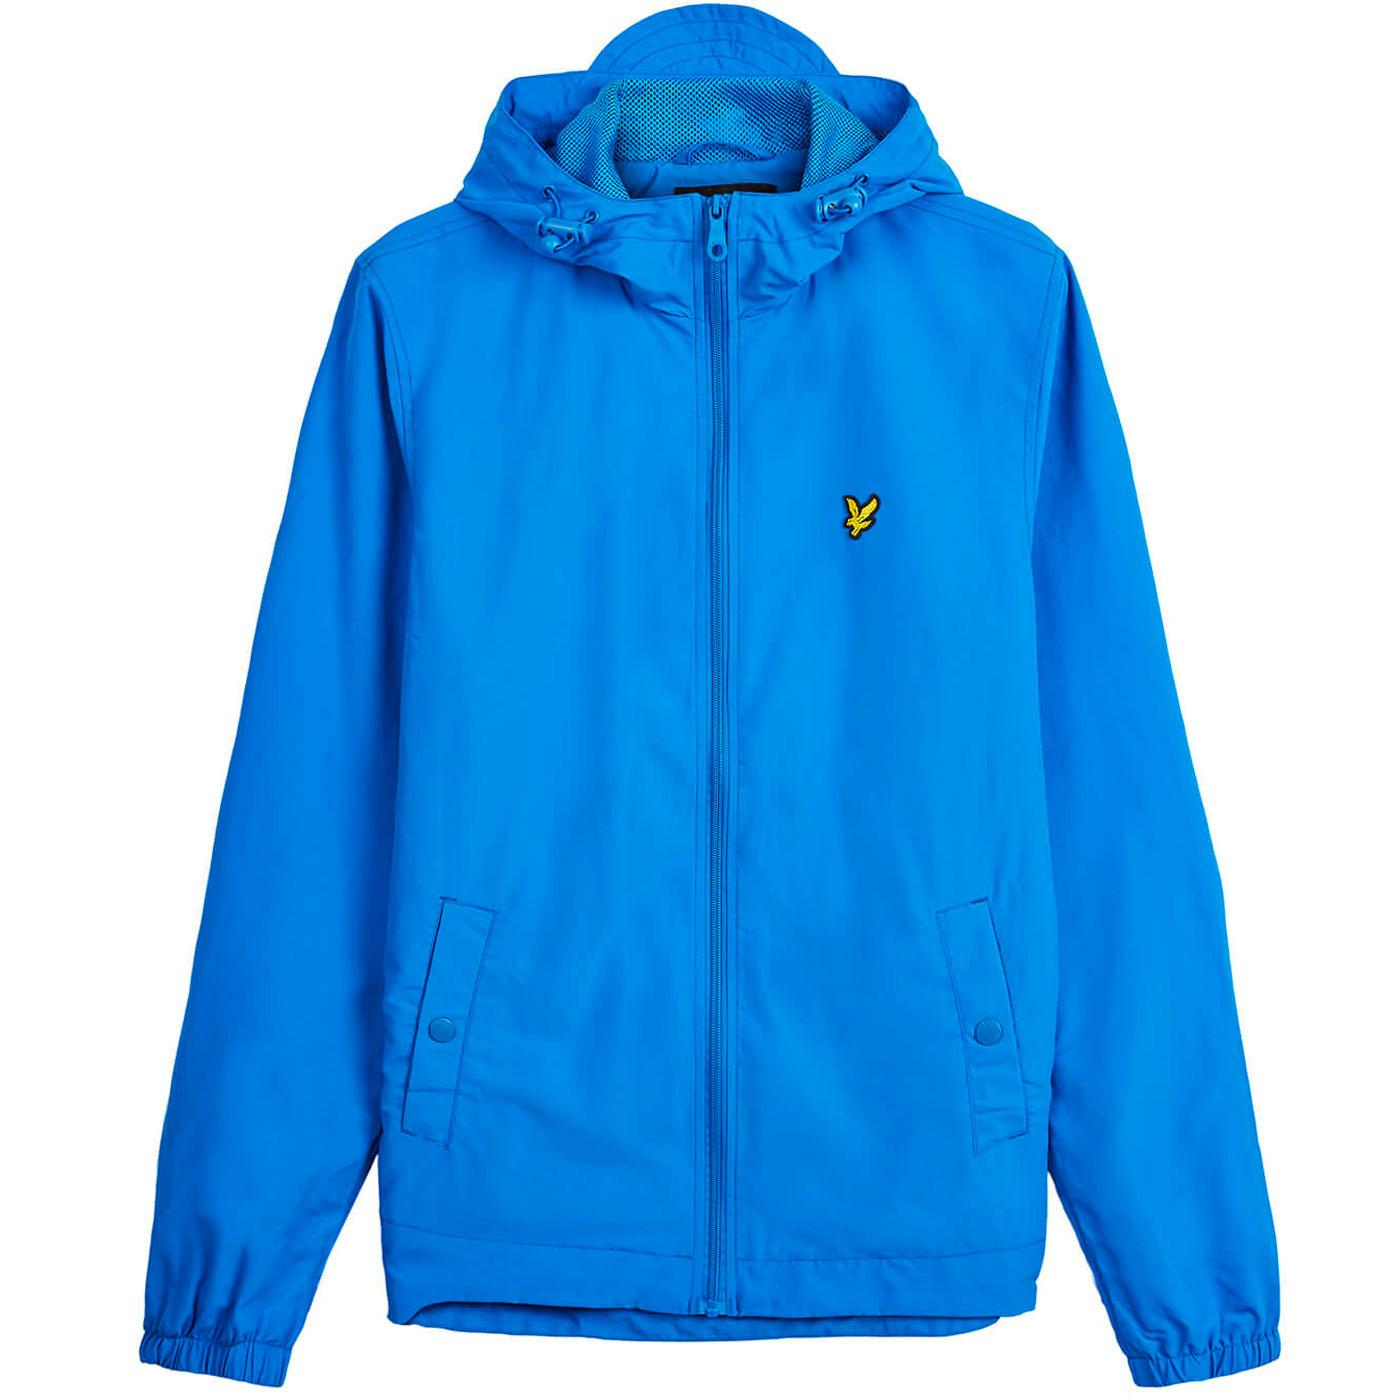 LYLE AND SCOTT Retro 90s Casual Hooded Jacket (C)